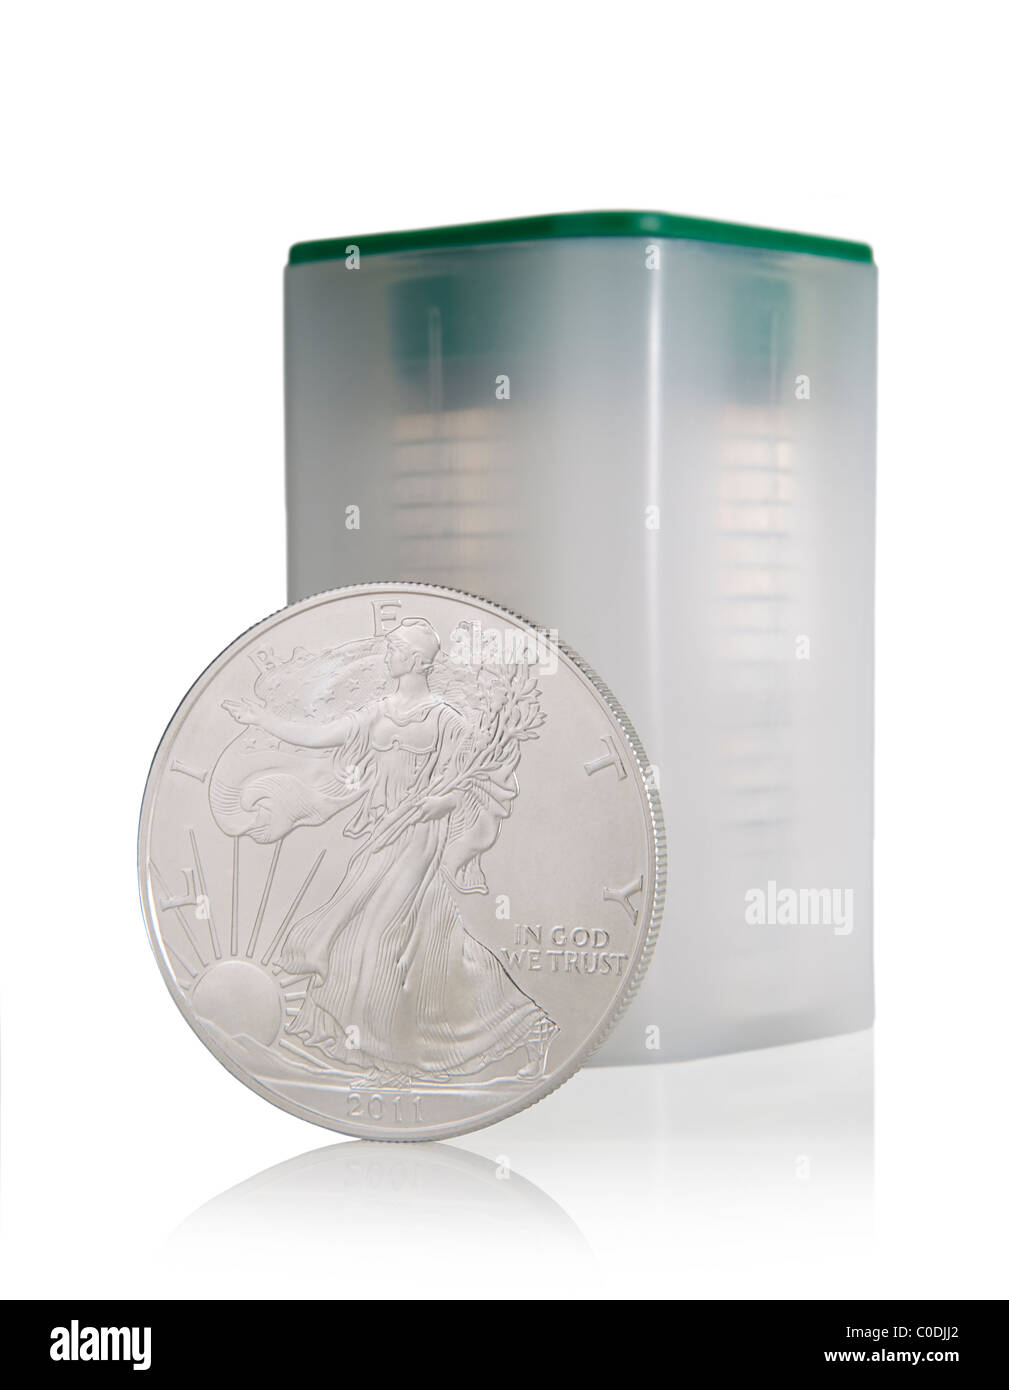 20 coin tube and a single 2011 Walking Liberty US silver Eagle coin - Stock Image